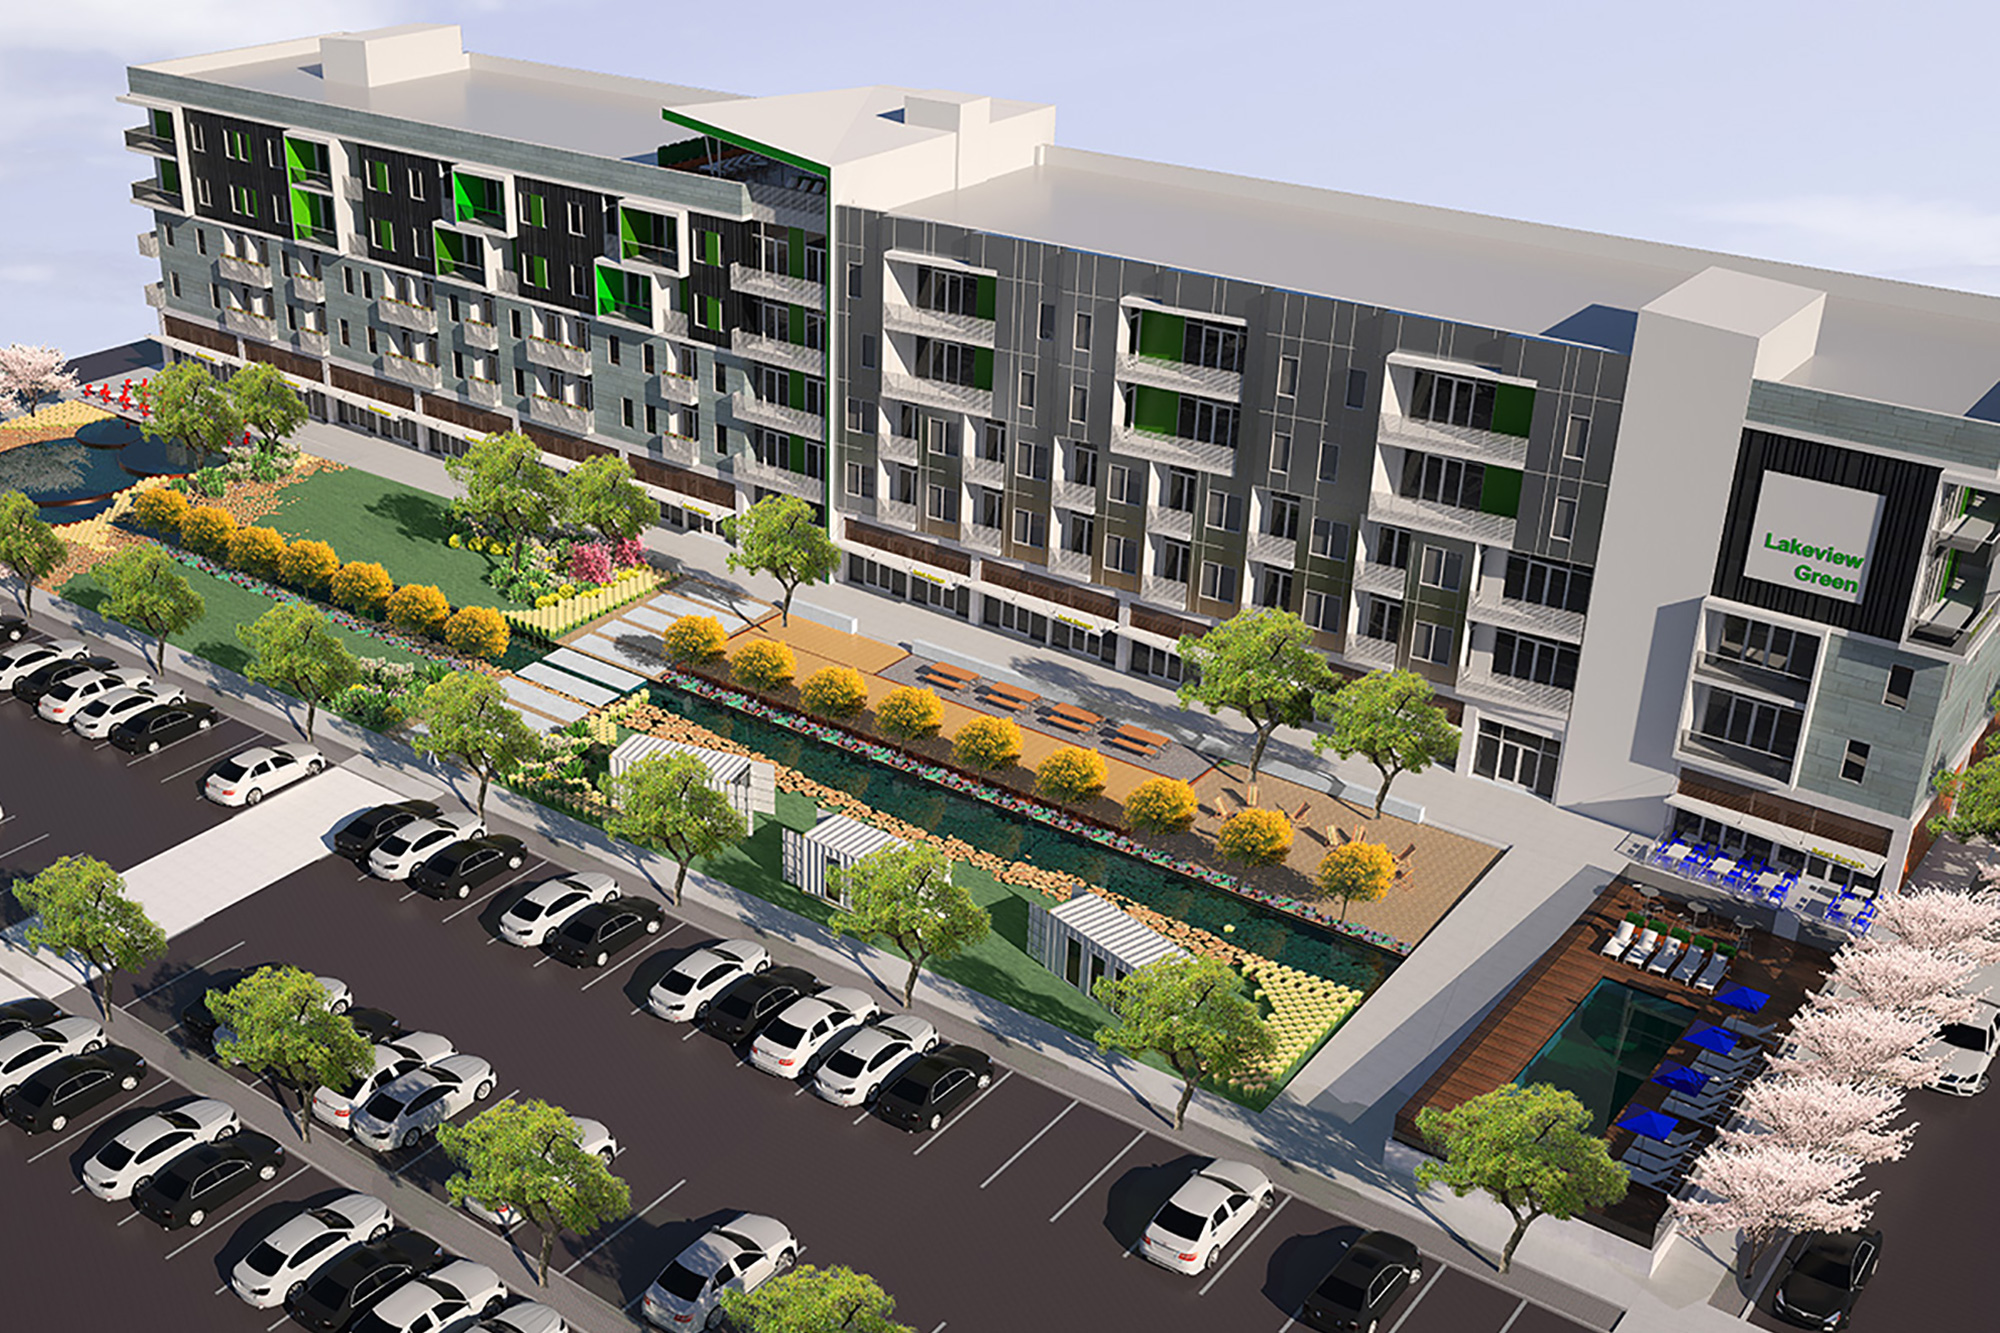 Leasing underway at Lakeview Green apartment community in Southside